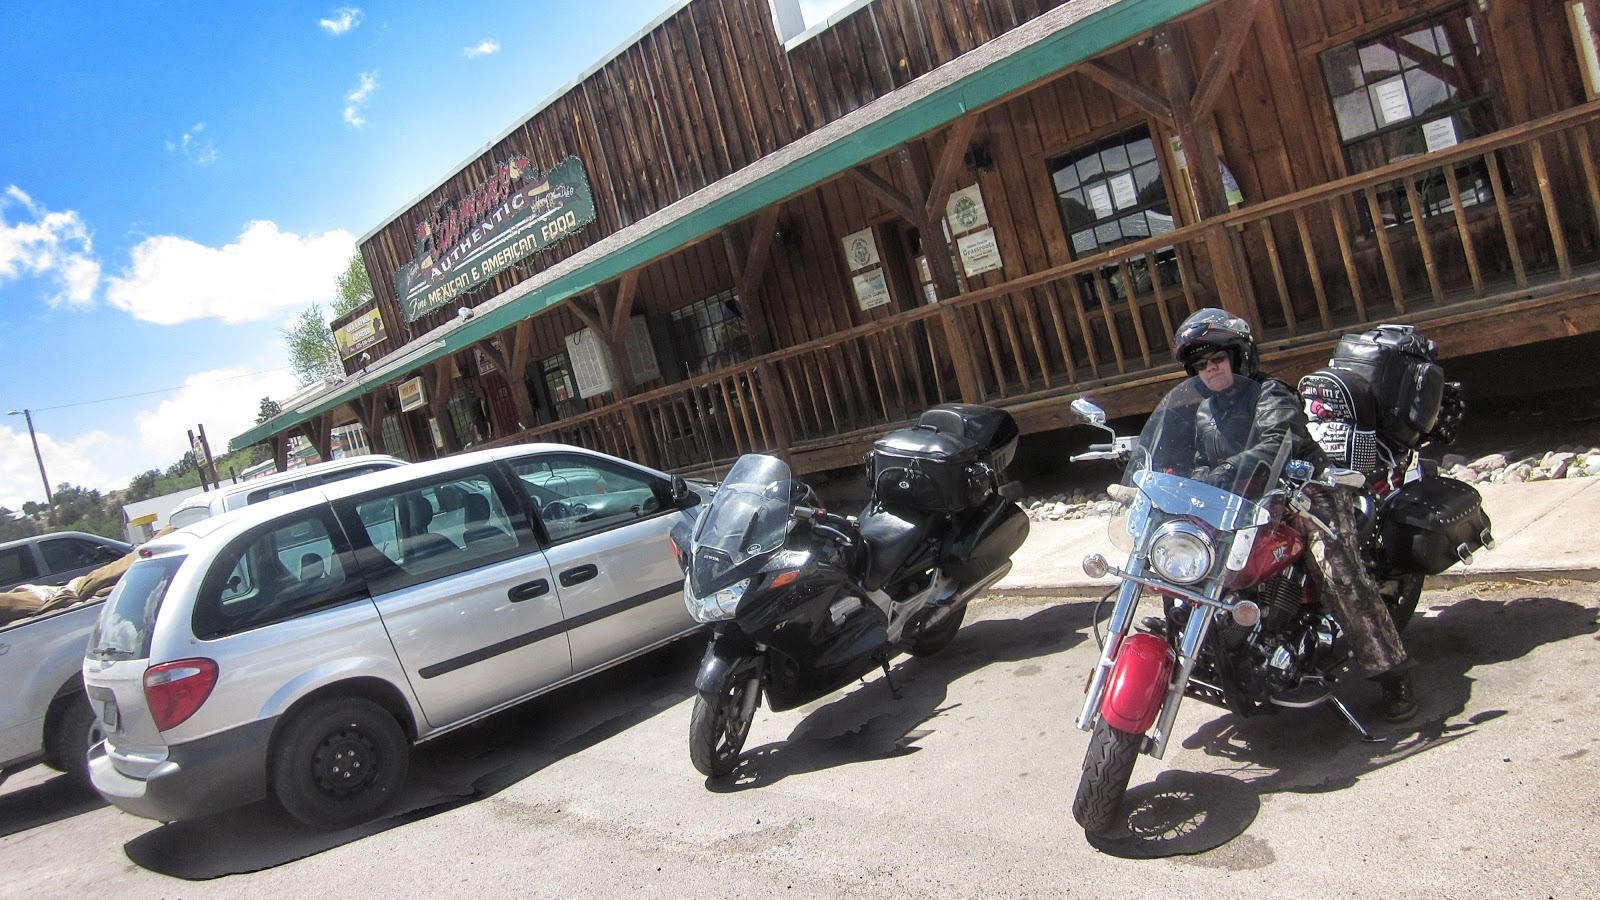 carmens mexican restaurant reserve nm